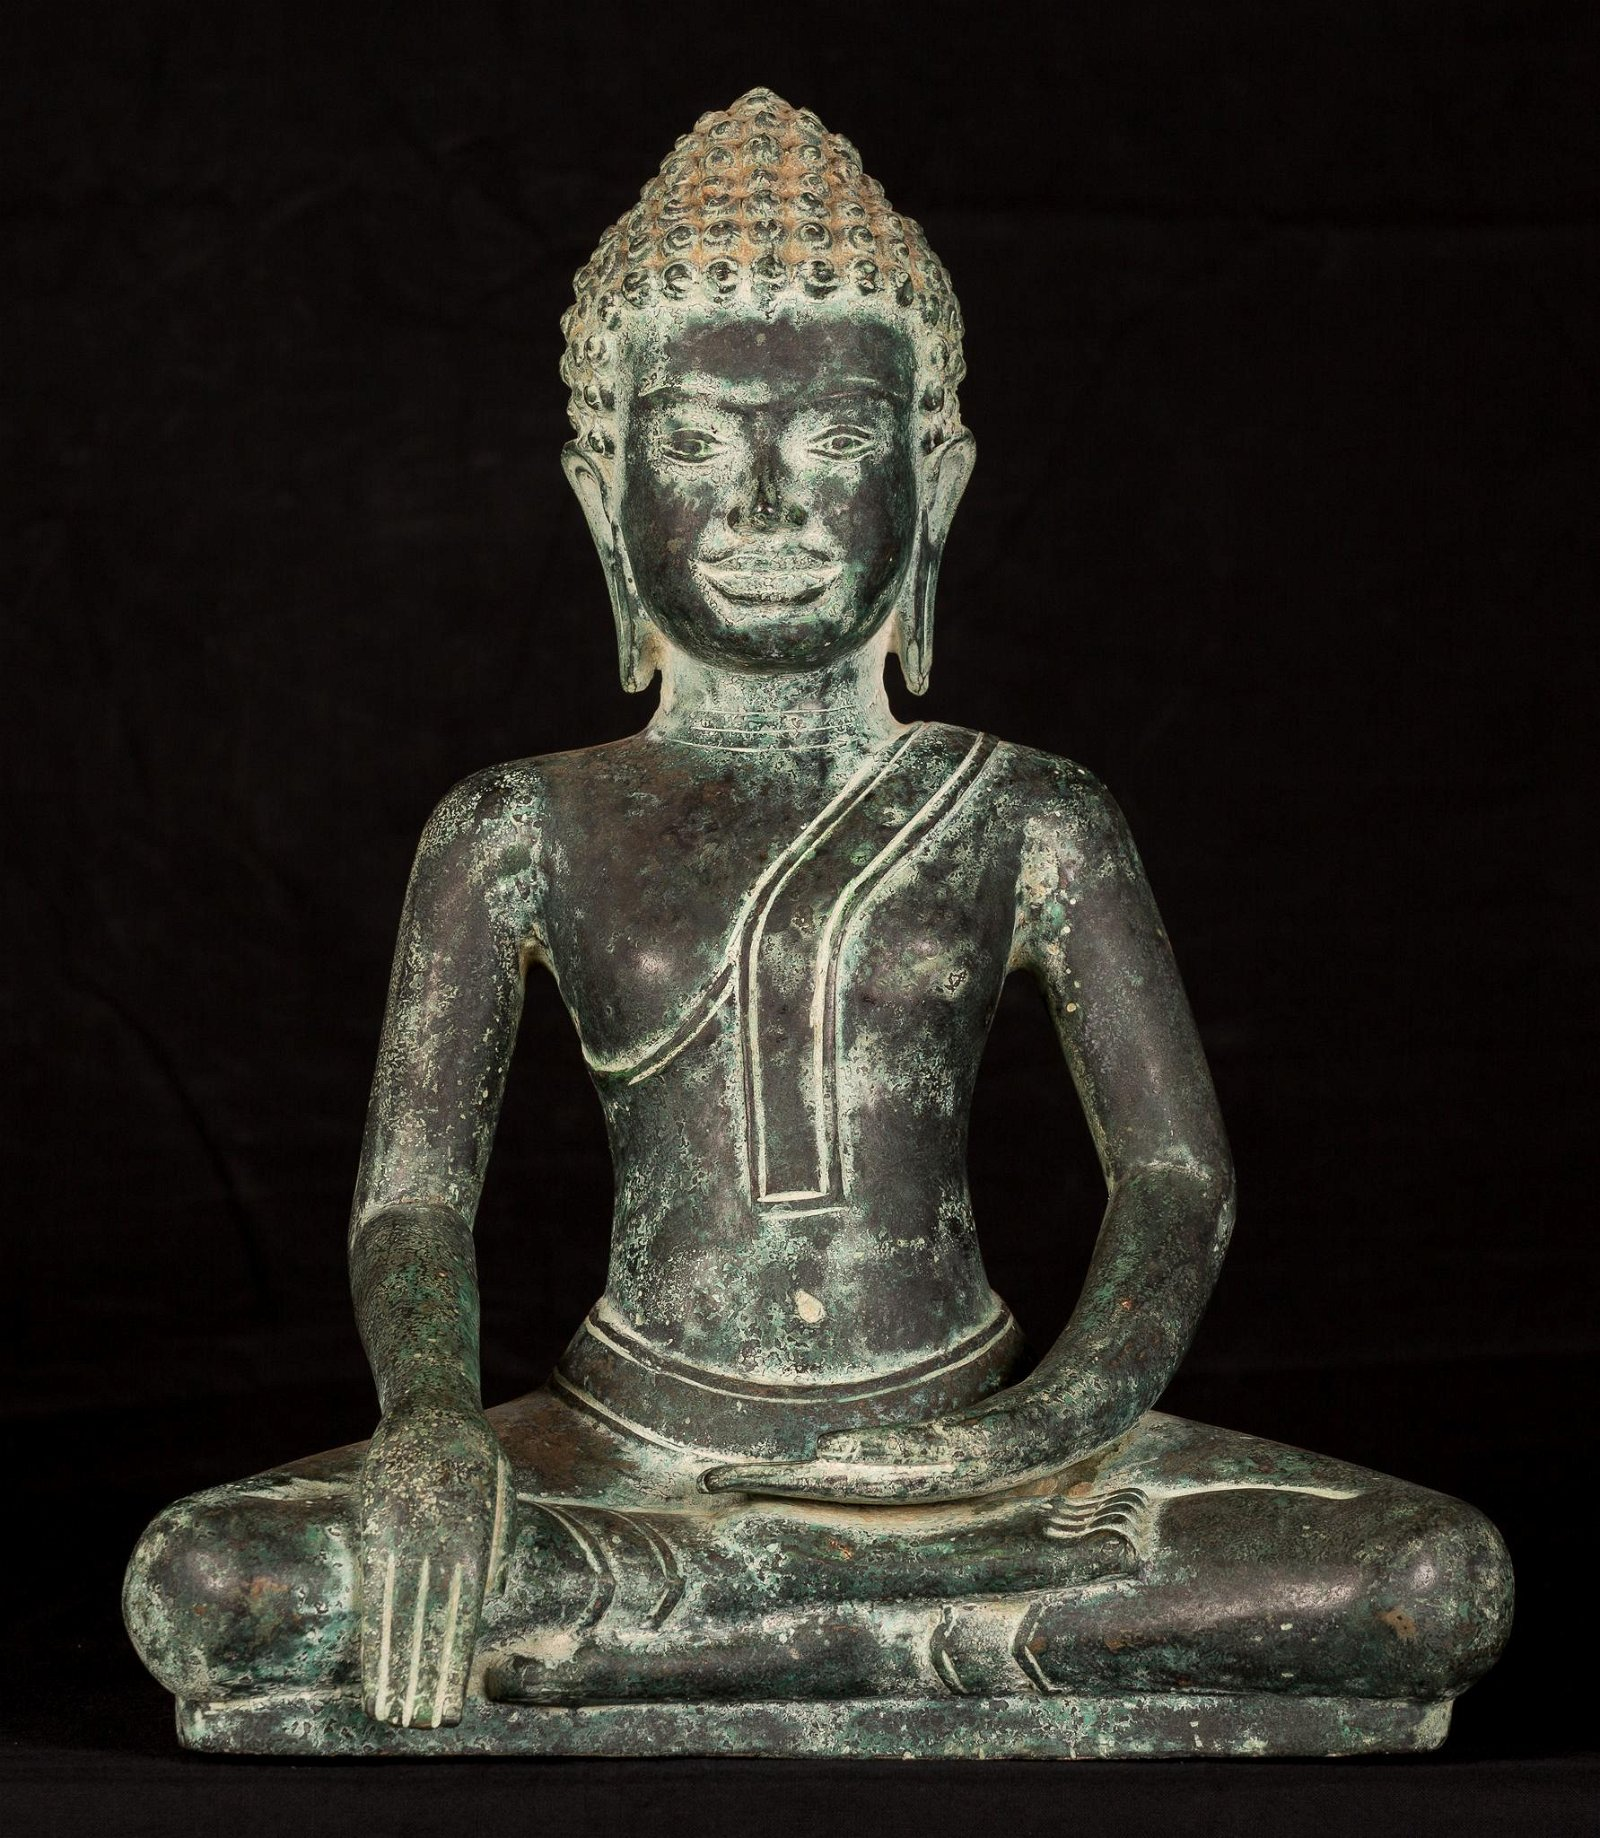 18th Century Dvaravati Thai Enlightenment Buddha